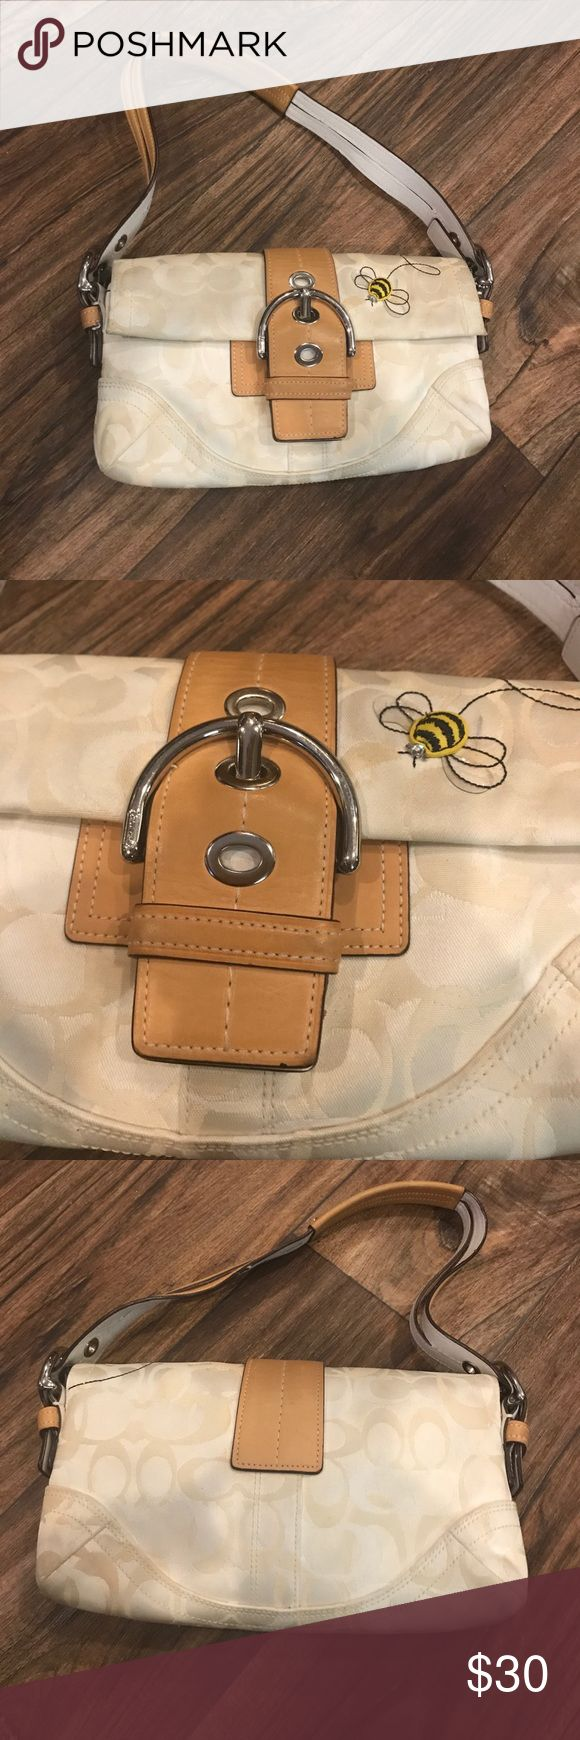 Off-white Coach mini Shoulder Bag with Bee detail Small Flap Off-white shoulder bag with bee  detail. Made with a classic Coach monogram print. Great for everyday  Has minor stain inside the handbag and by the bee detail but overall its in great condition. Coach Bags Mini Bags